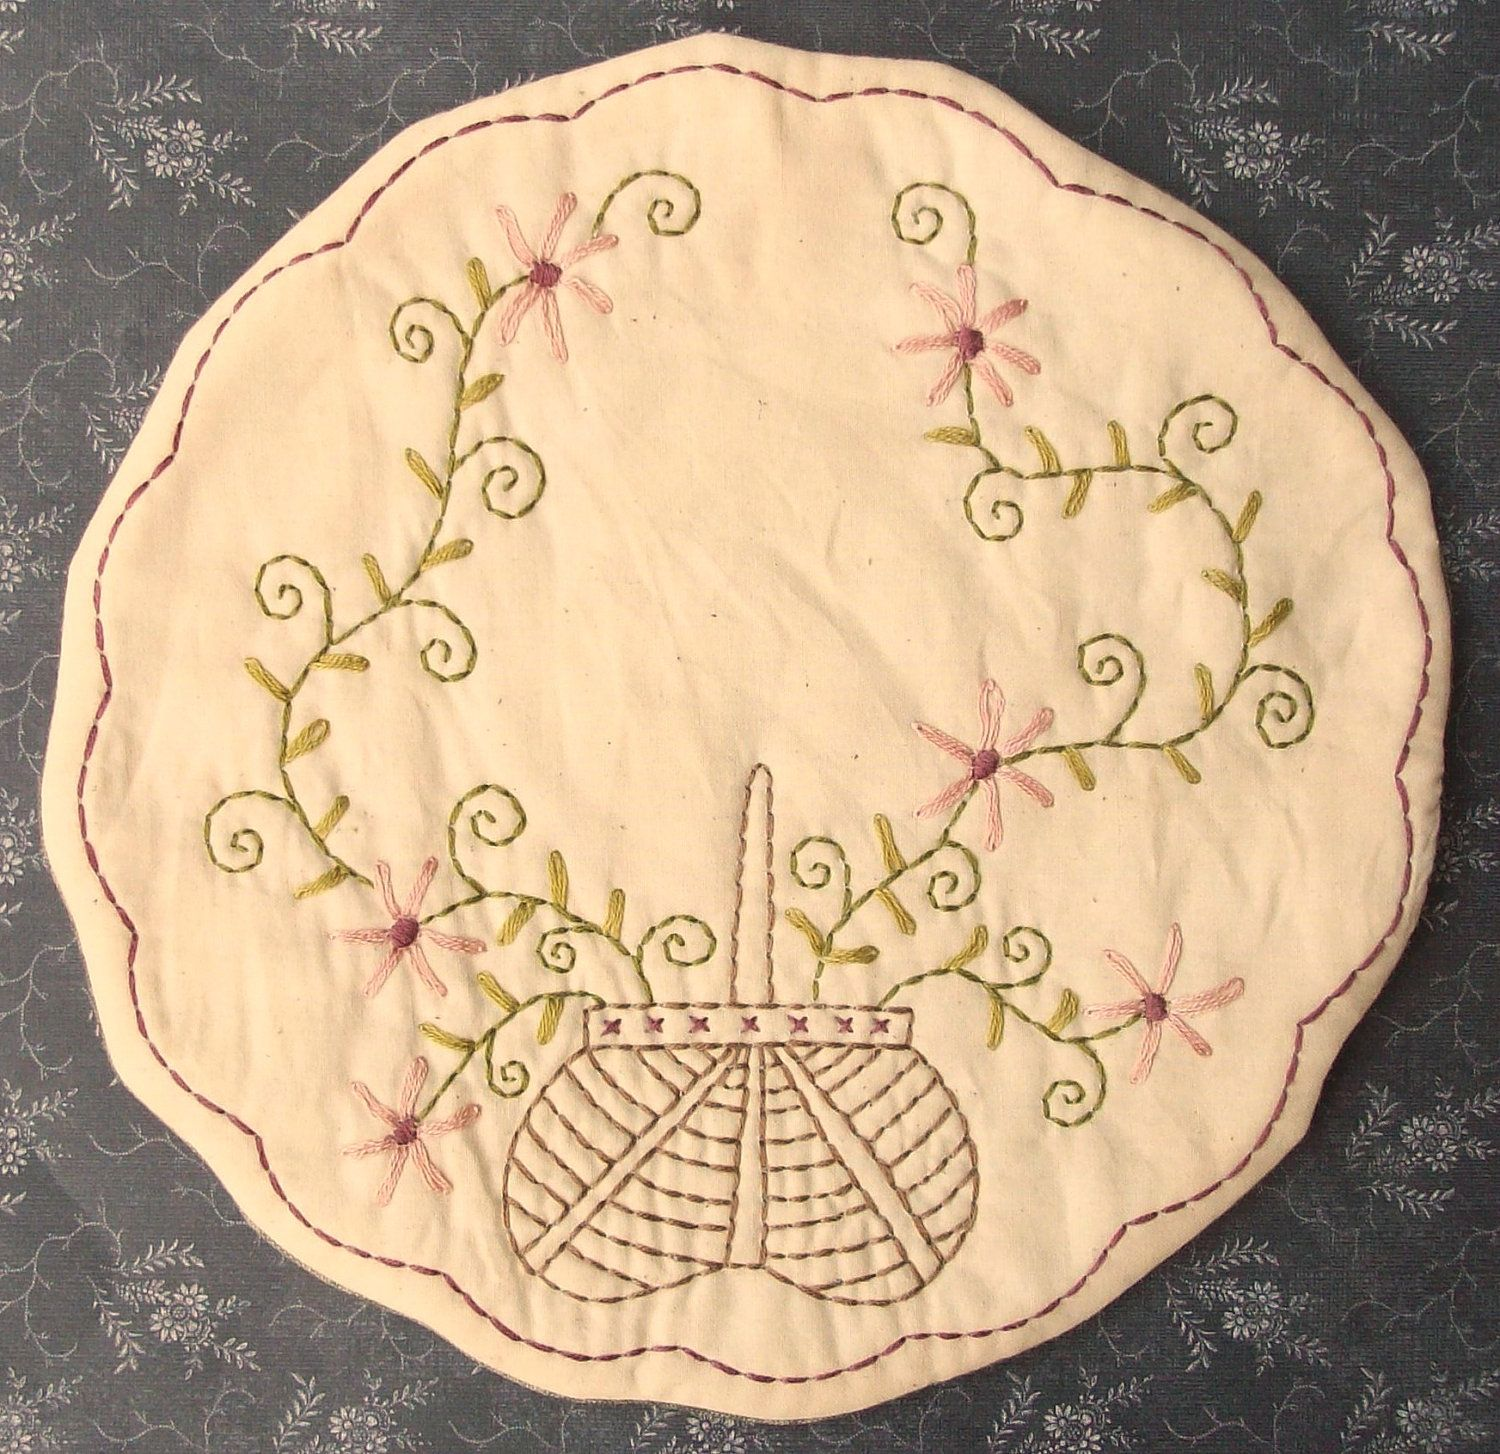 Stitchery Patterns | Primitive Stitchery Candle Mat PATTERN Basket Of by thetalkingcrow